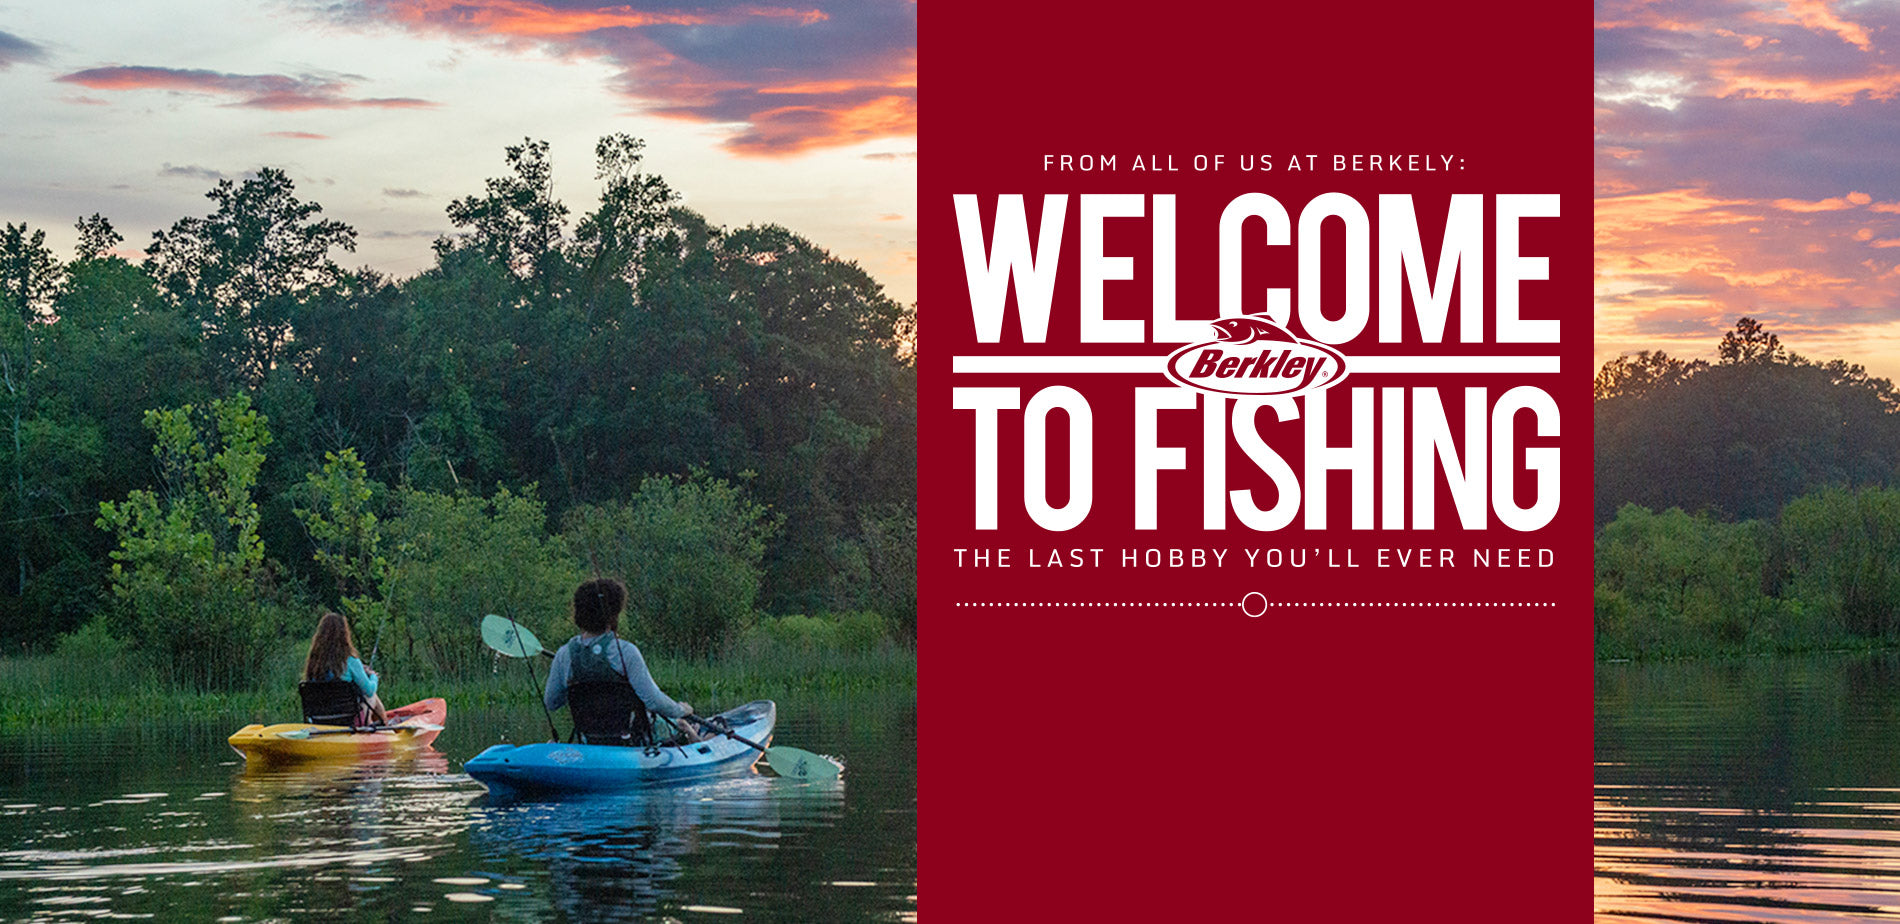 From all of us at Berkley, Welcome to Fishing, the last hobby you'll ever need.